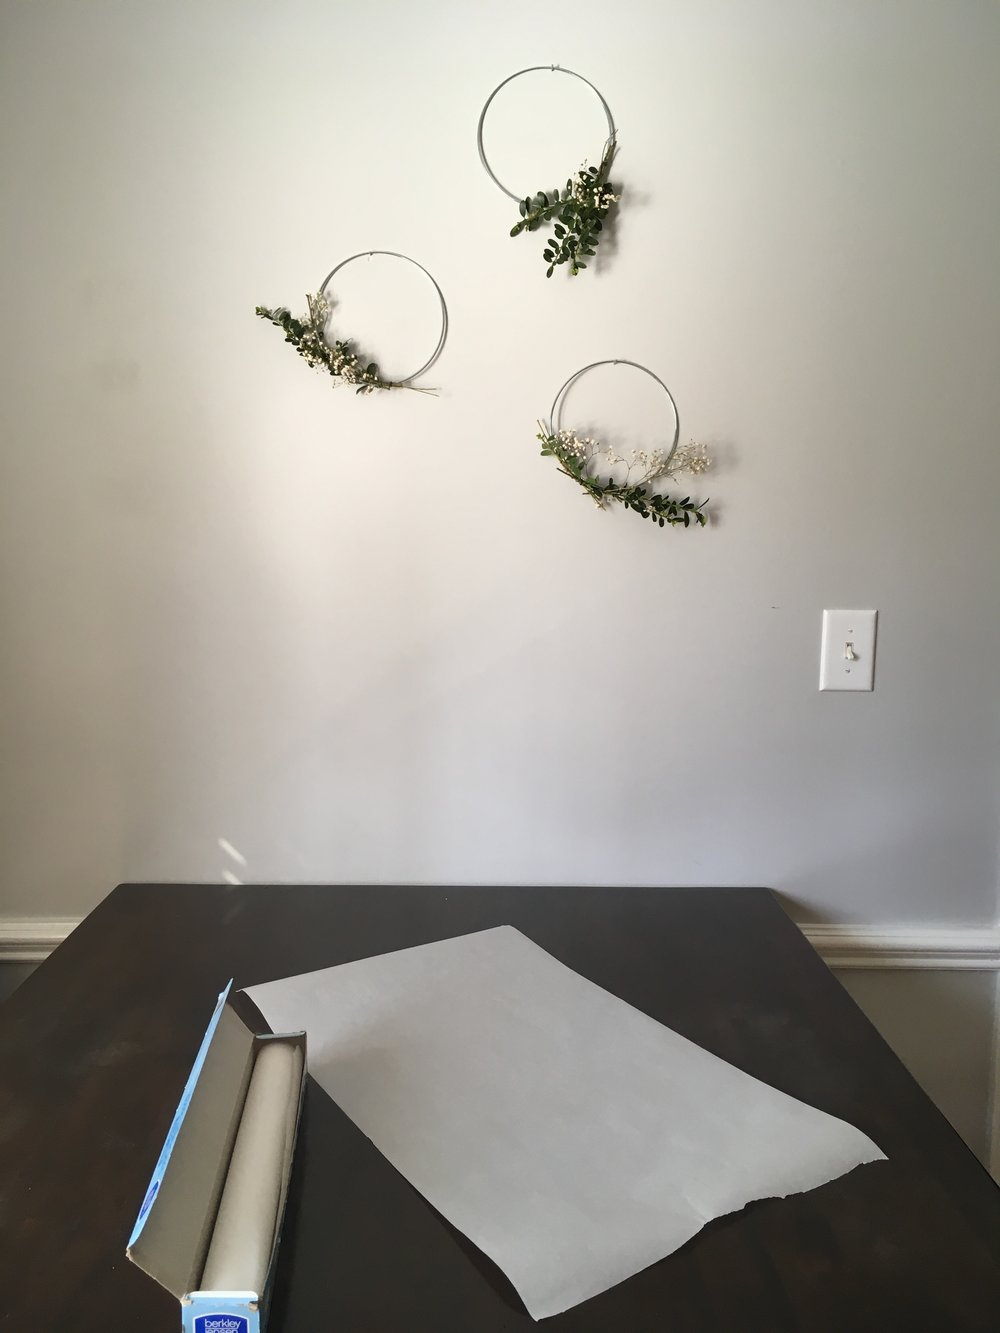 Step 1. - Choose a large sheet of light colored paper. I used a piece of parchment paper. If you have a roll of solid white or kraft paper that would work, too.